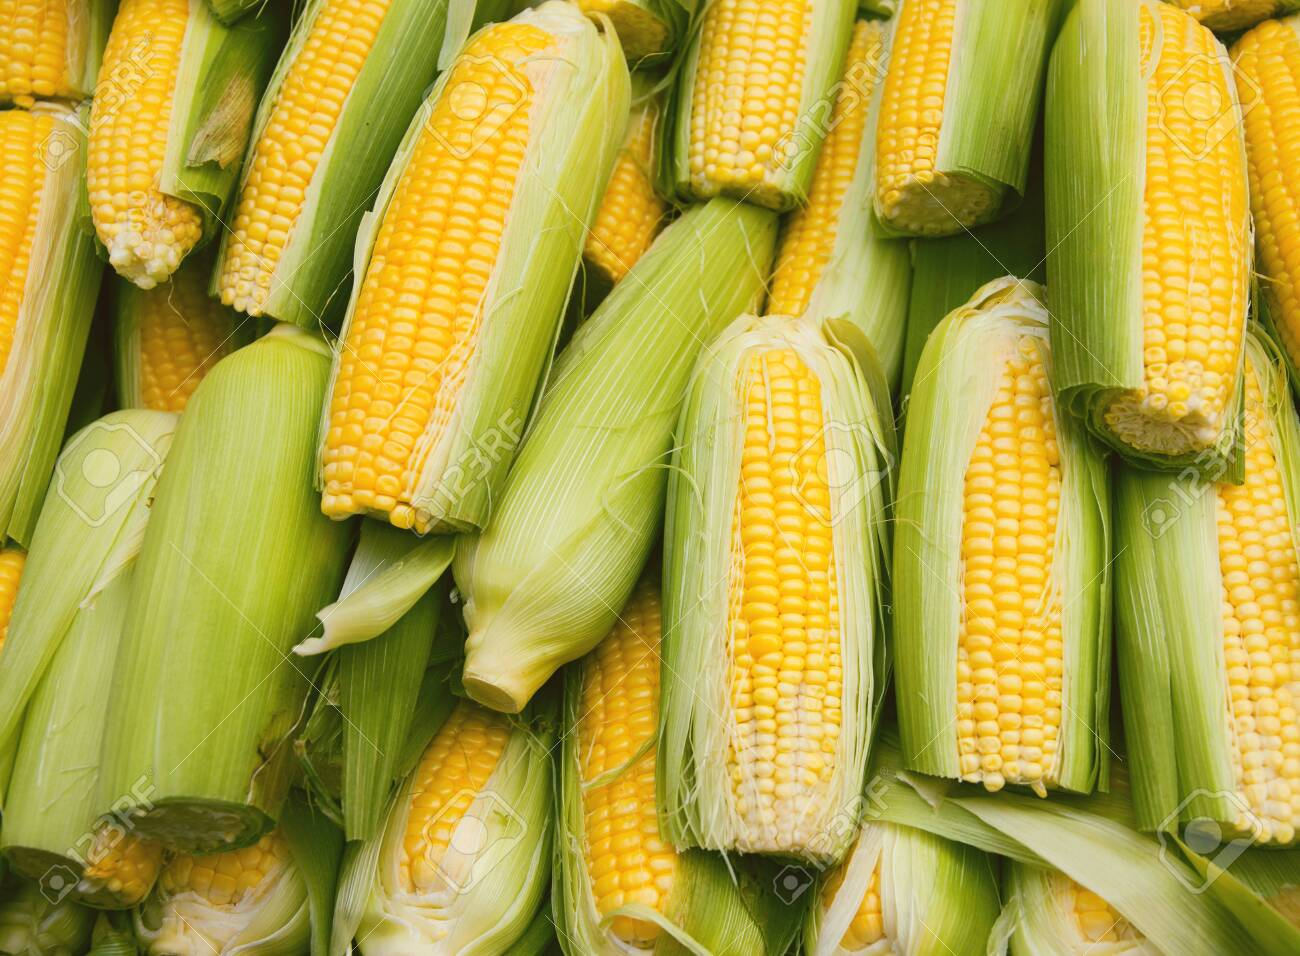 Fresh raw yellow corn in the street market. Organic product suitable for vegeterians and vegans. Healthy food concept background - 131672065